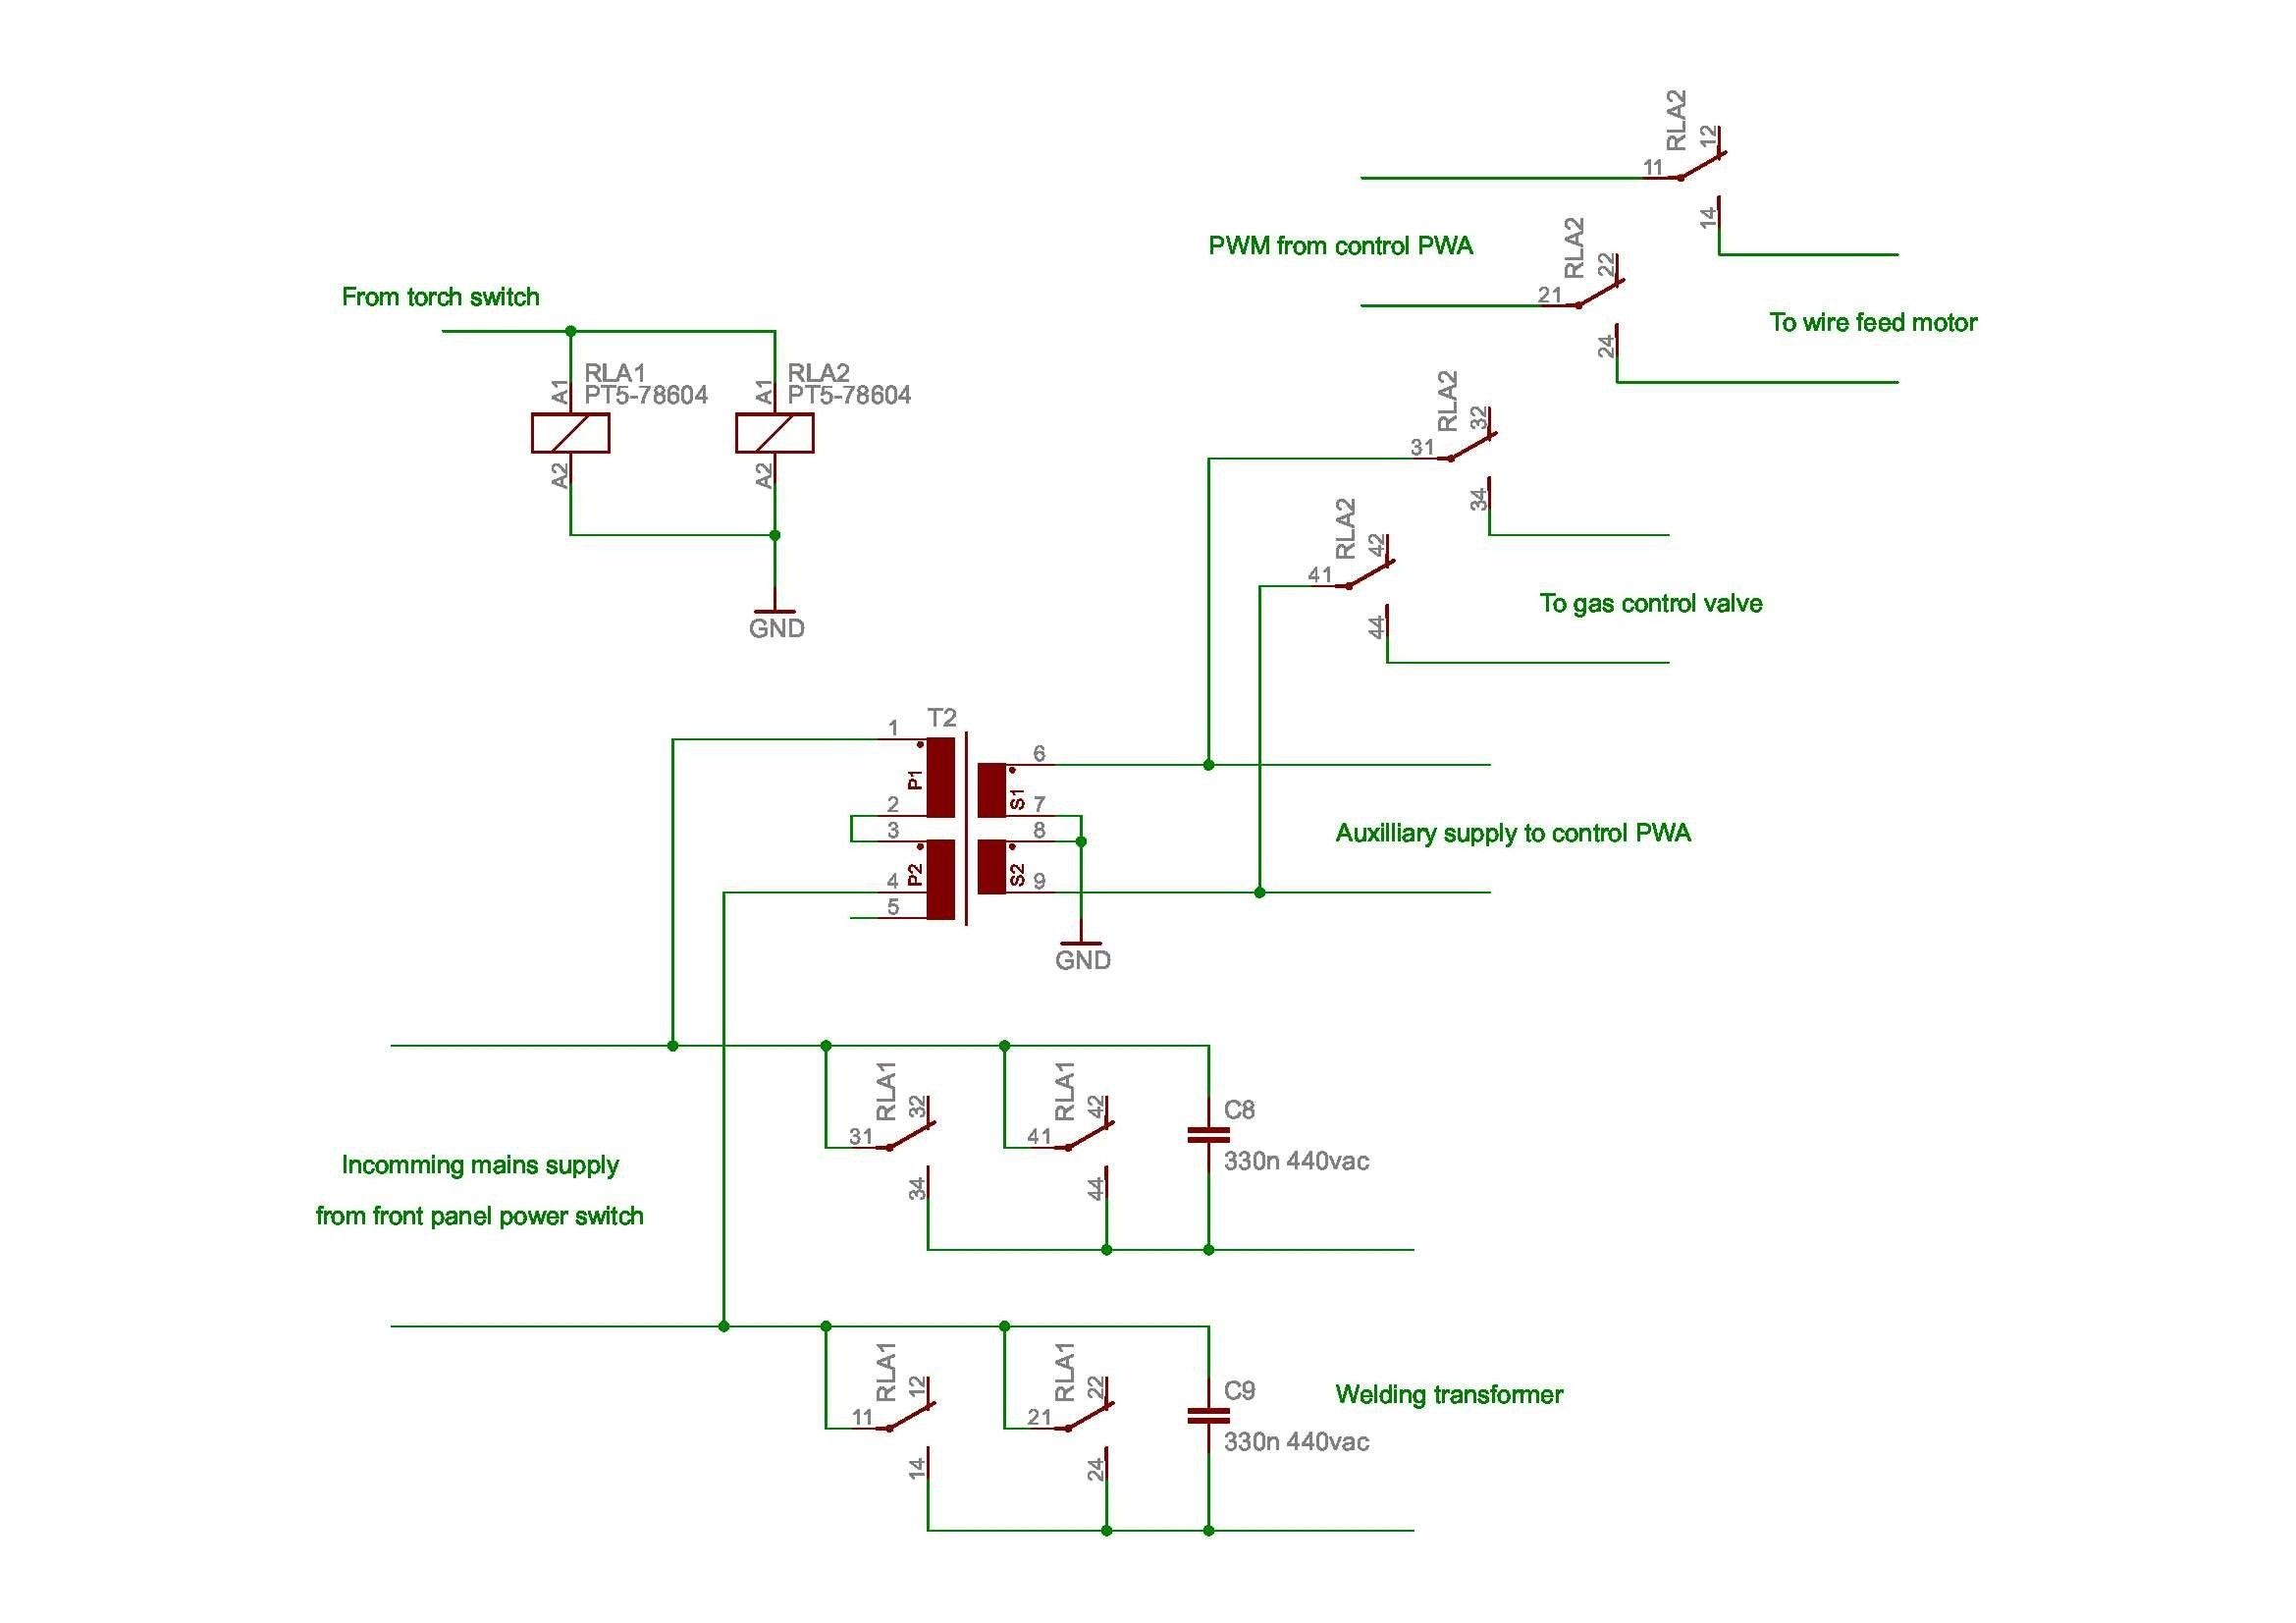 Lovely Wiring Diagram Zig Unit Diagrams Digramssample Diagramimages Wiringdiagramsample Wiringdiagram Check More At Https Nostoc Co W With Images Diagram Floor Plans